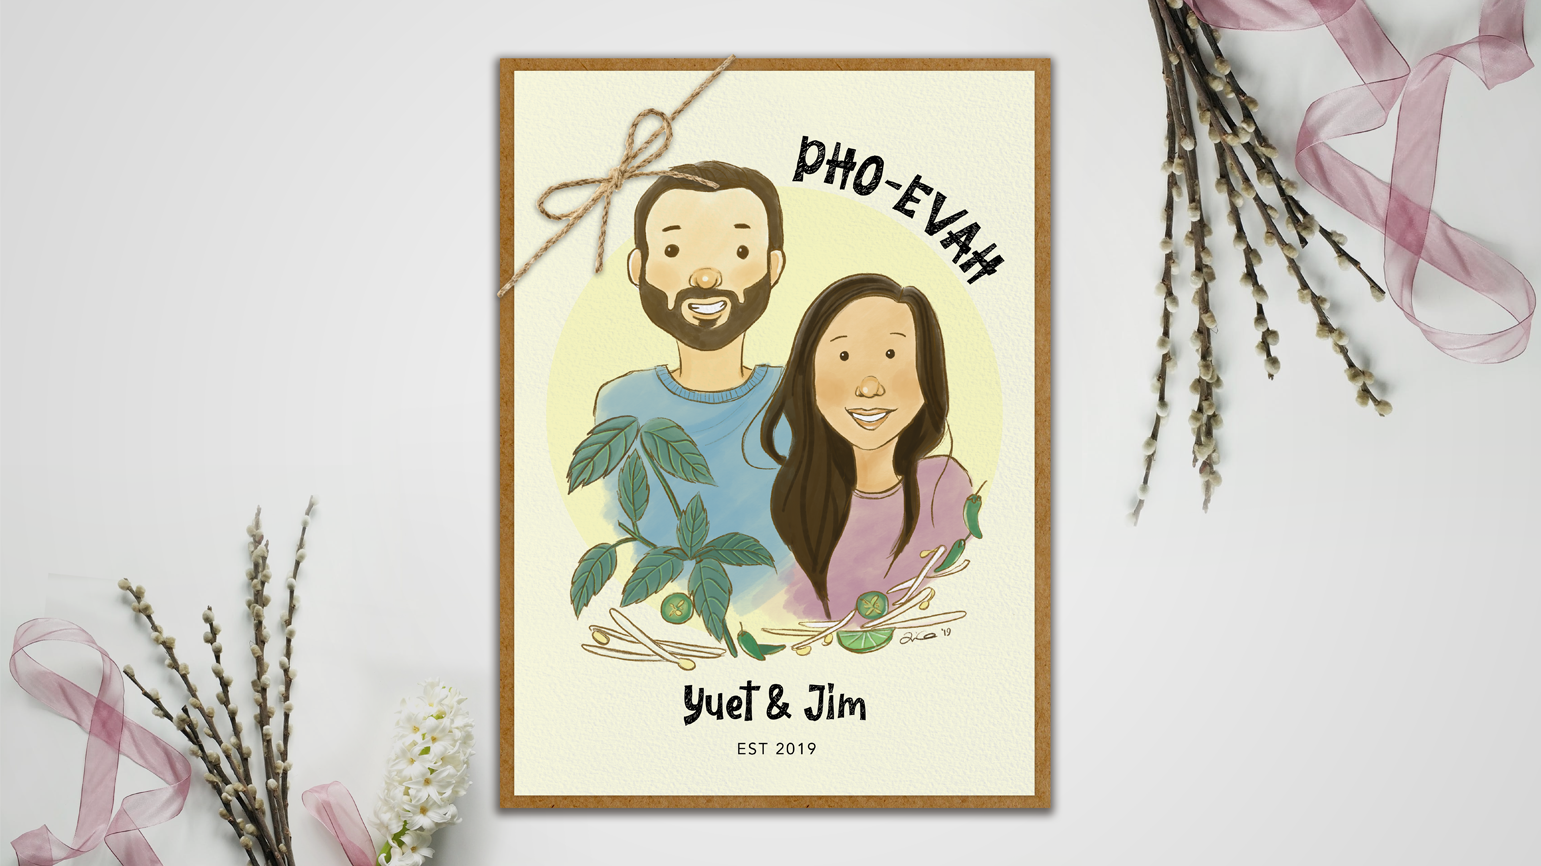 Wedding Portrait: Pho-Evah And Evah